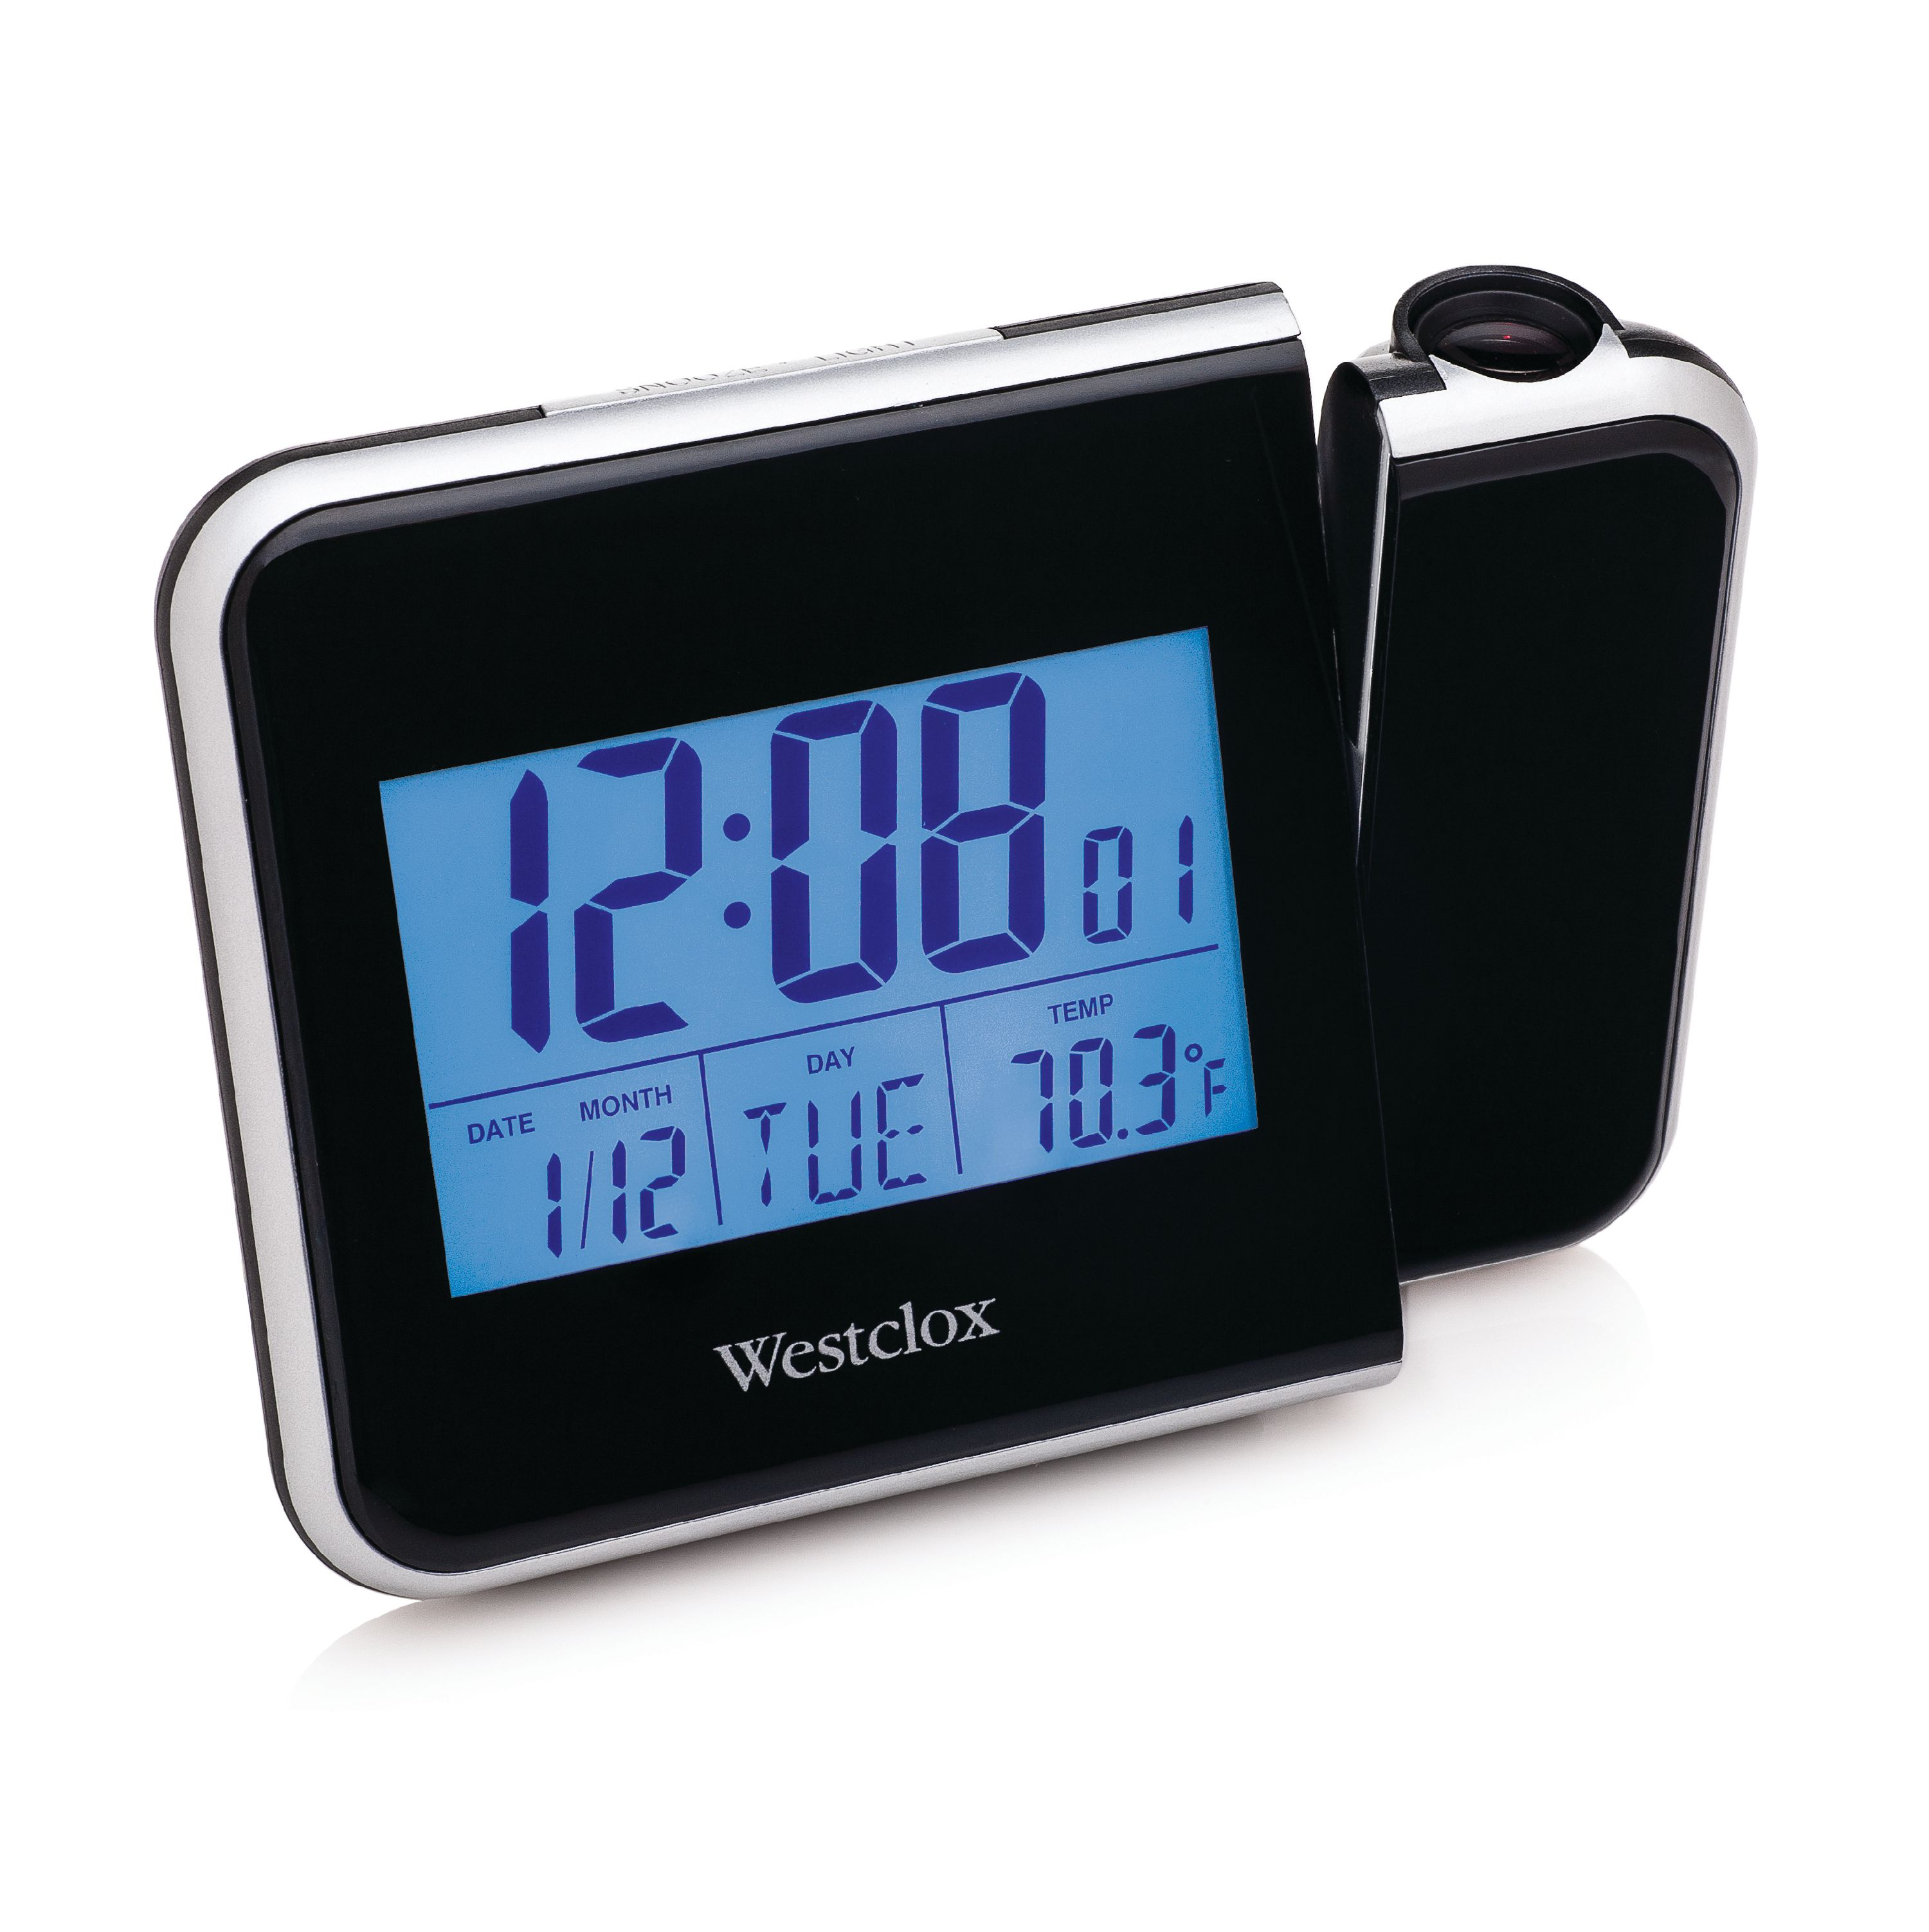 westclox alarm clock with indoor outdoor temperature outdoor designs rh hughcabot com